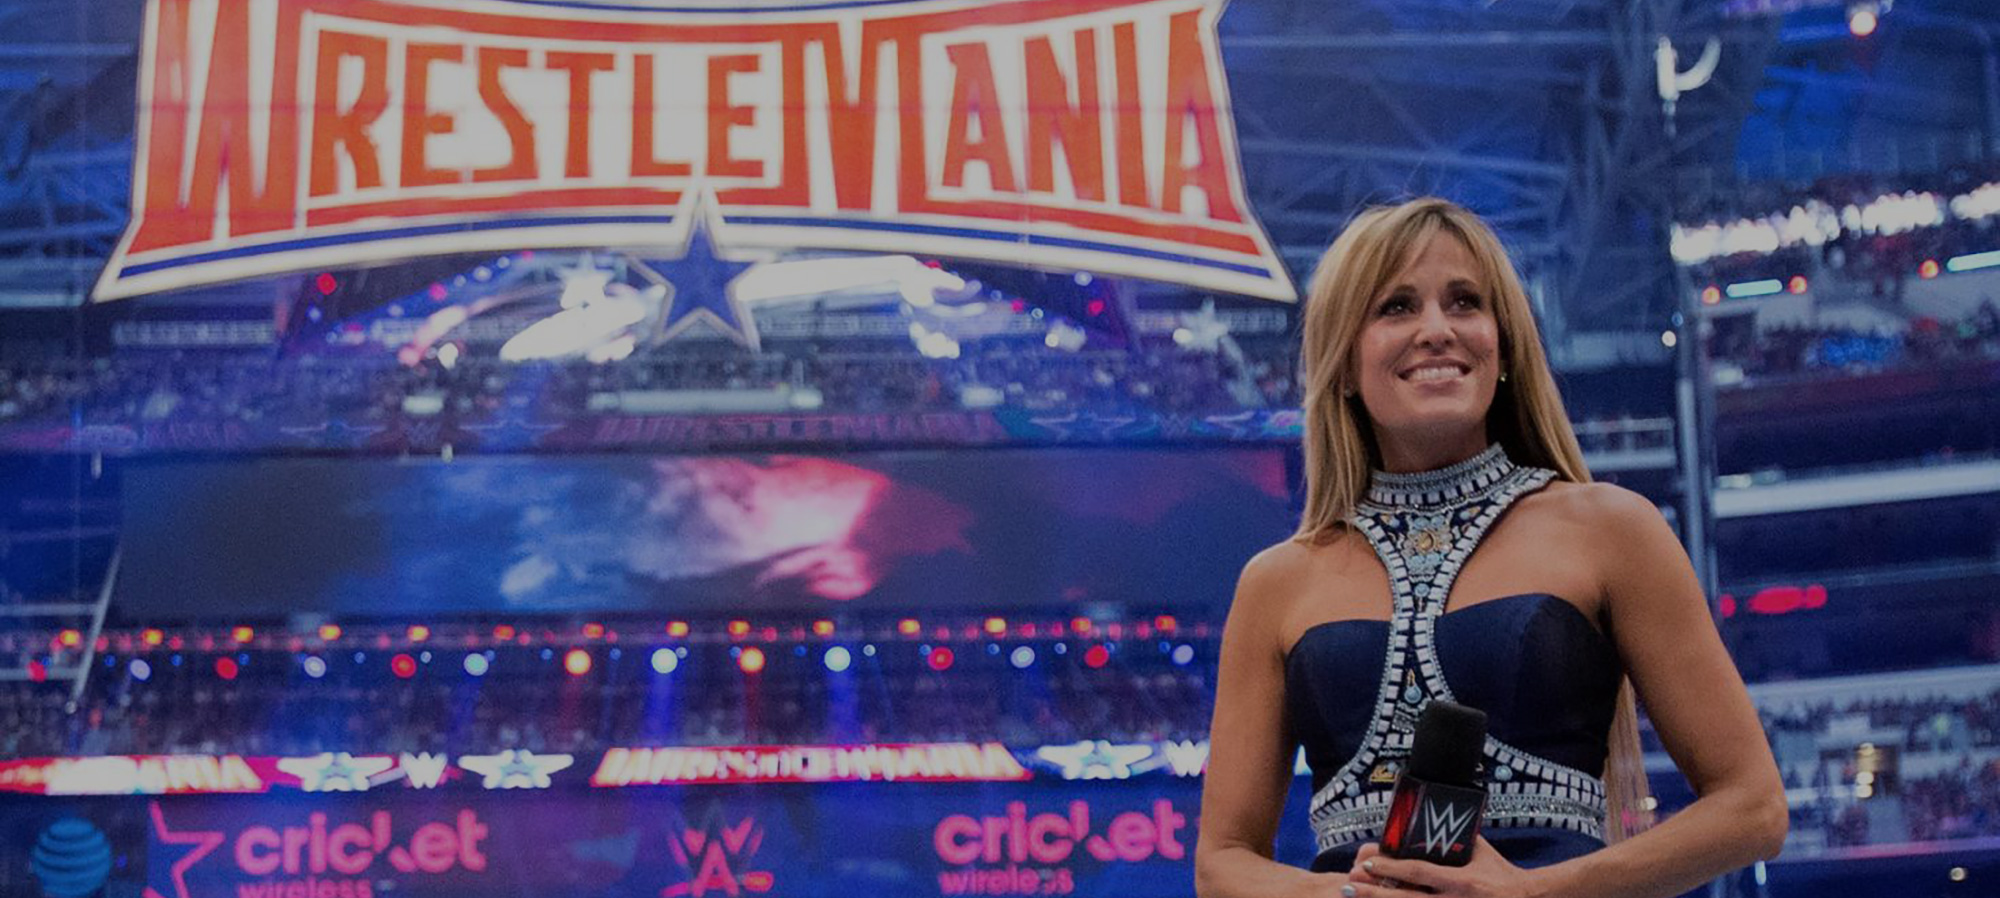 Lilian Announces WrestleMania Women's Battle Royal